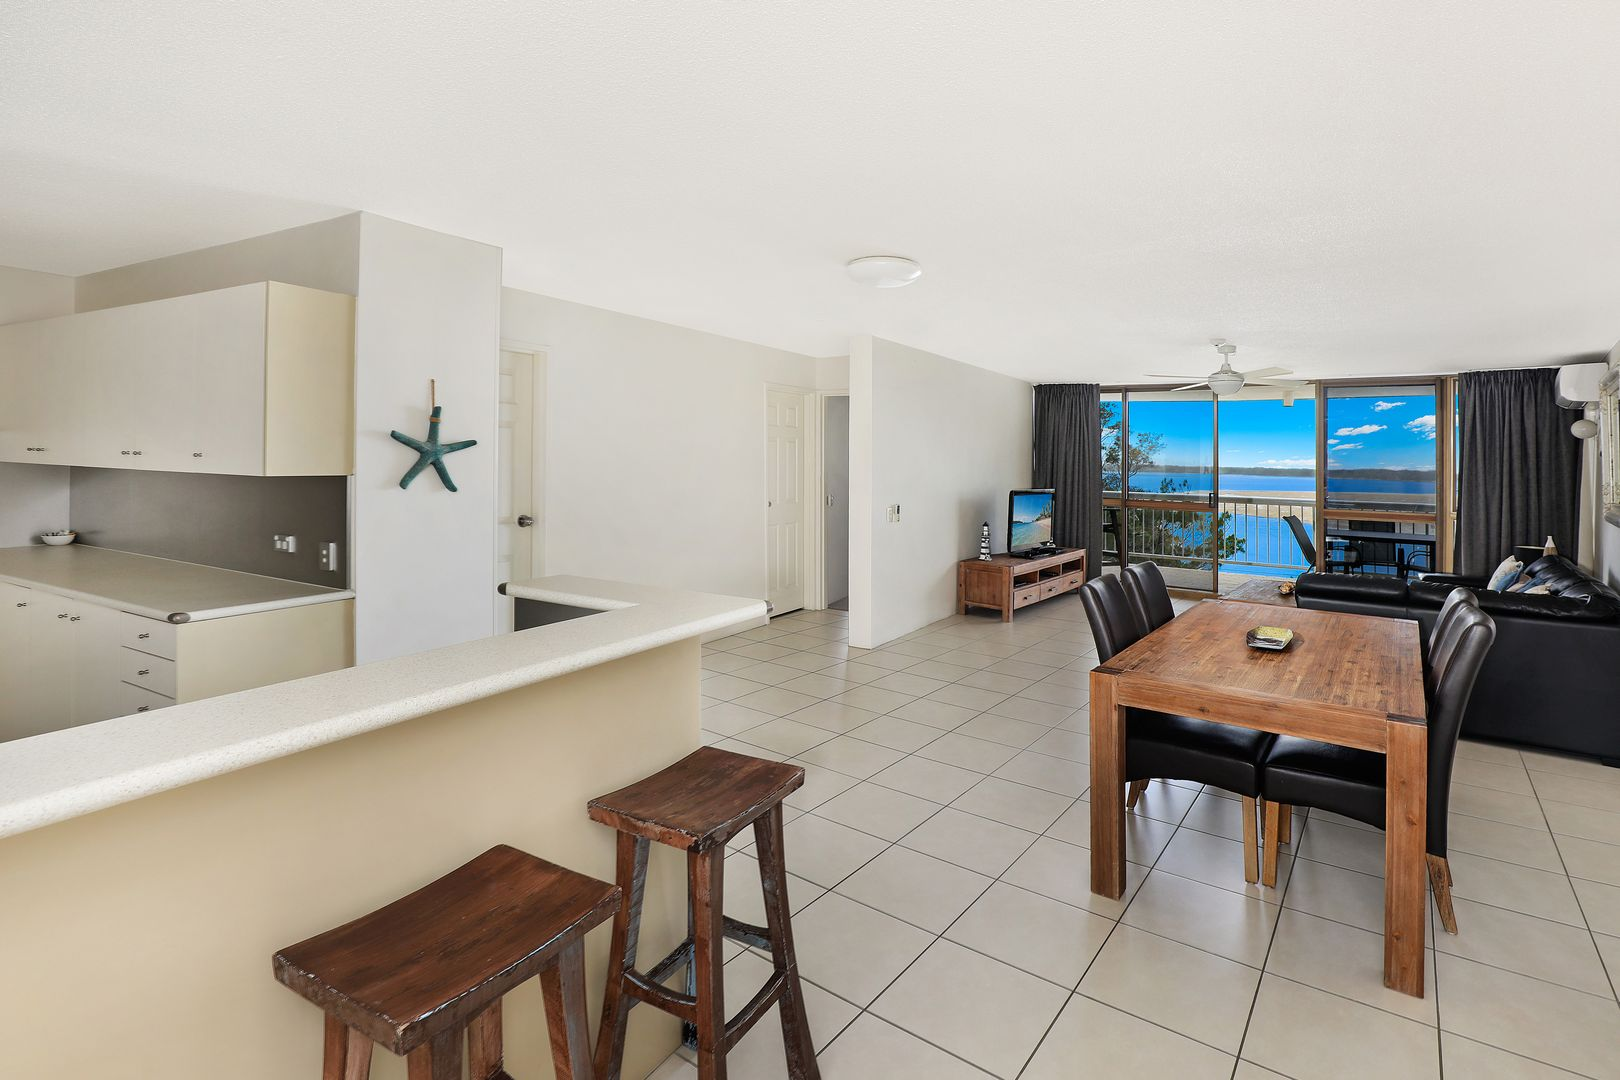 25/49 Landsborough Pde - Gemini Resort, Golden Beach QLD 4551, Image 2